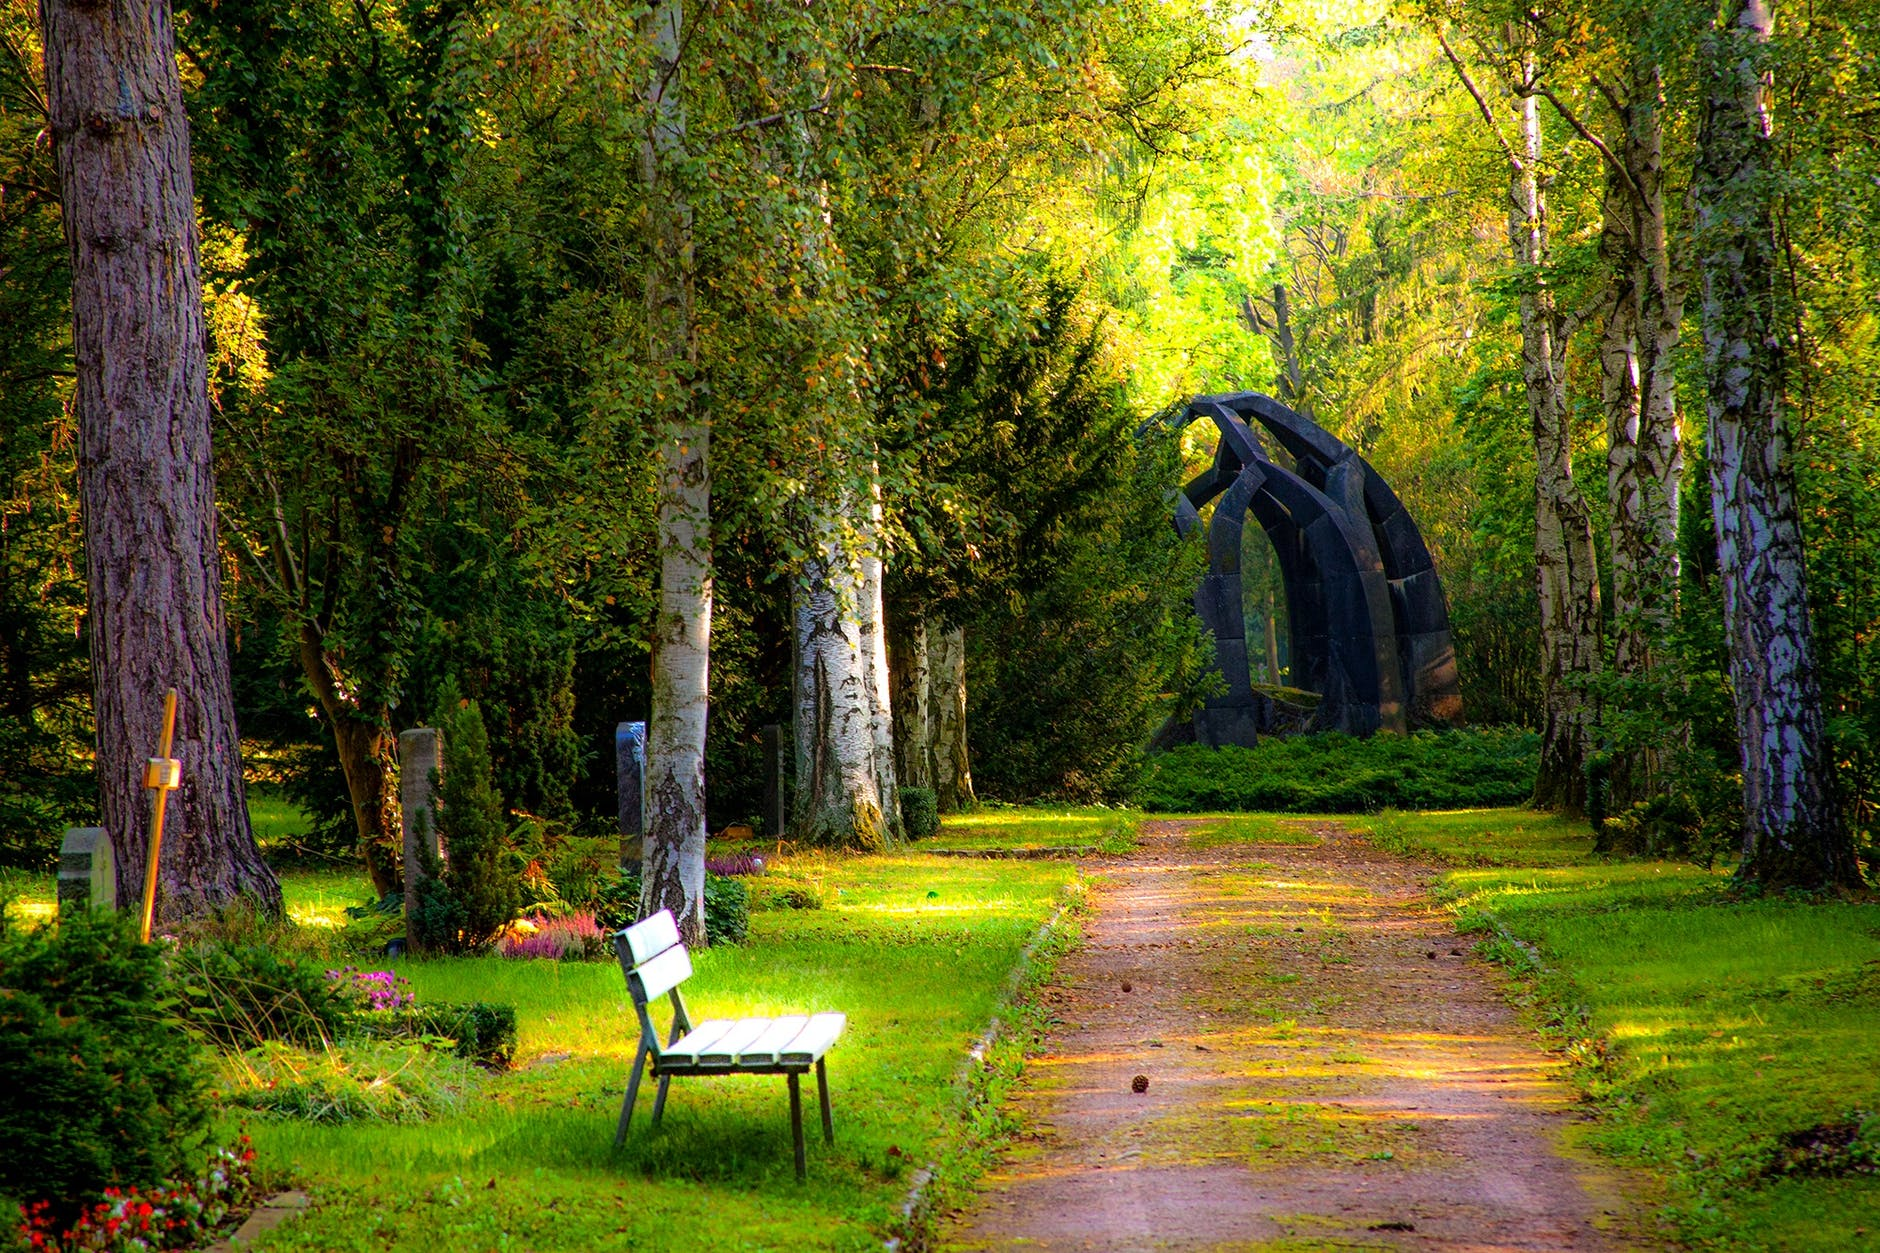 An image of a garden | Photo: Pixabay